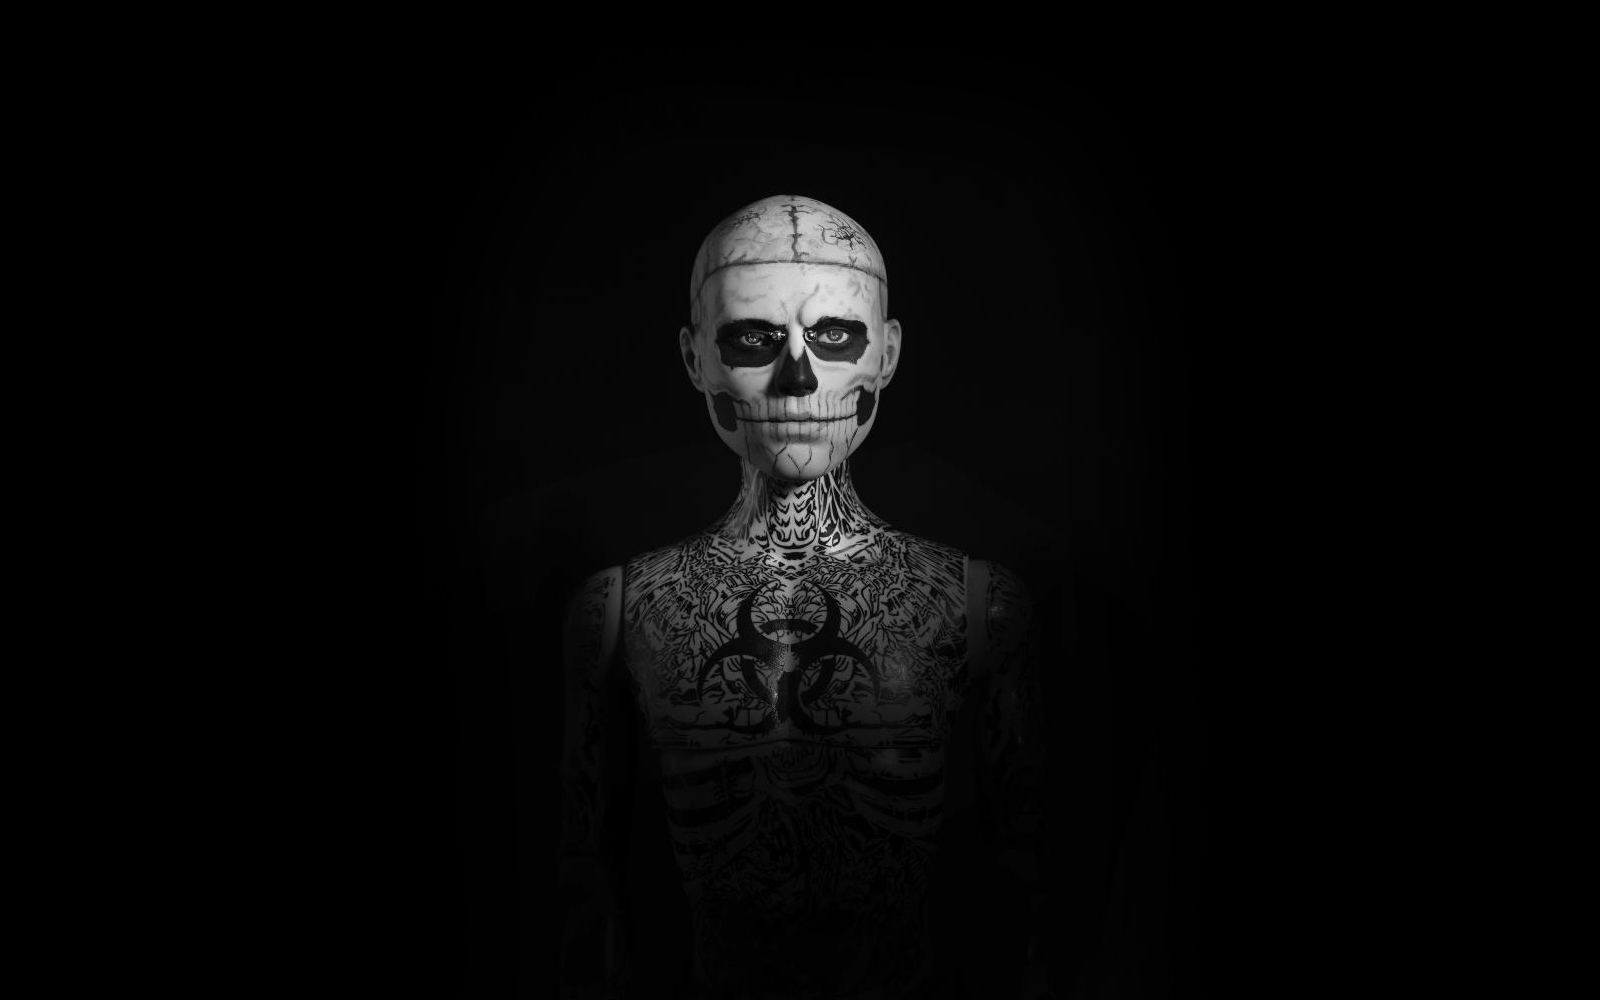 Zombie Boy, Model From Lady Gagas Music Video, Dies